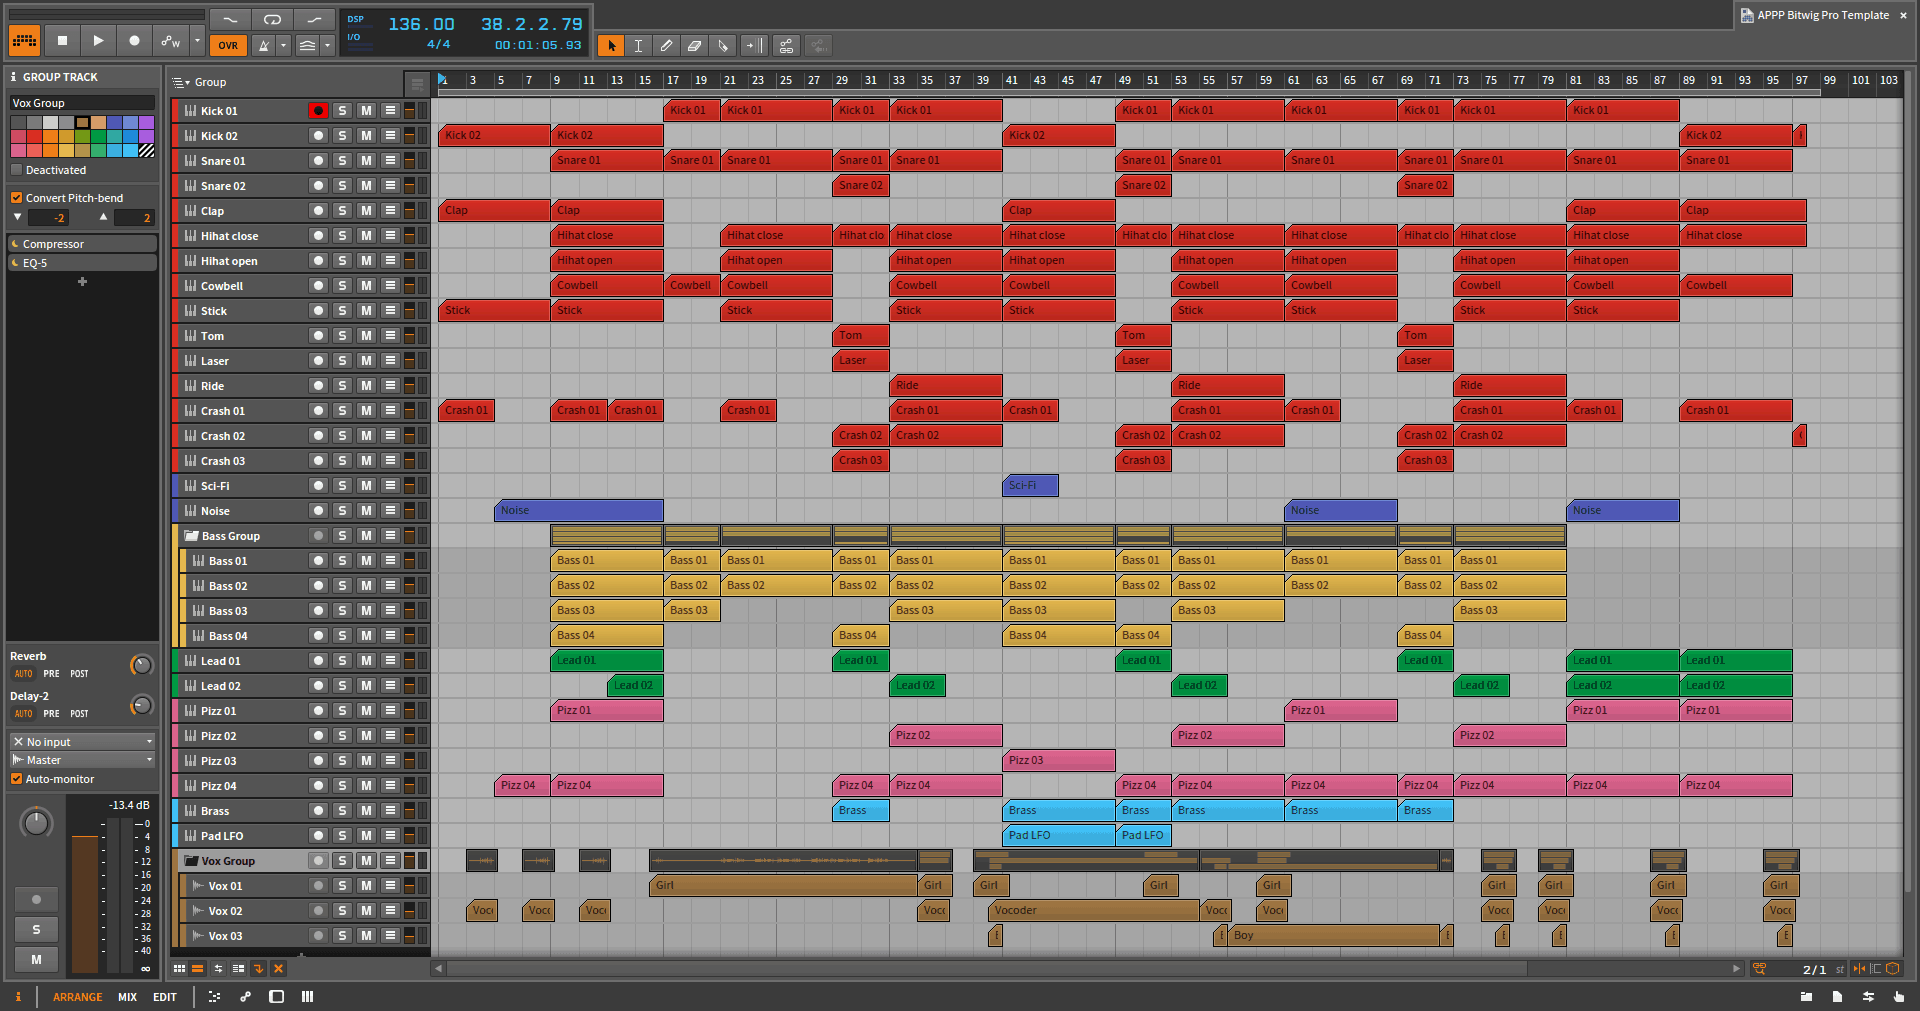 appp-bitwig-pro-template